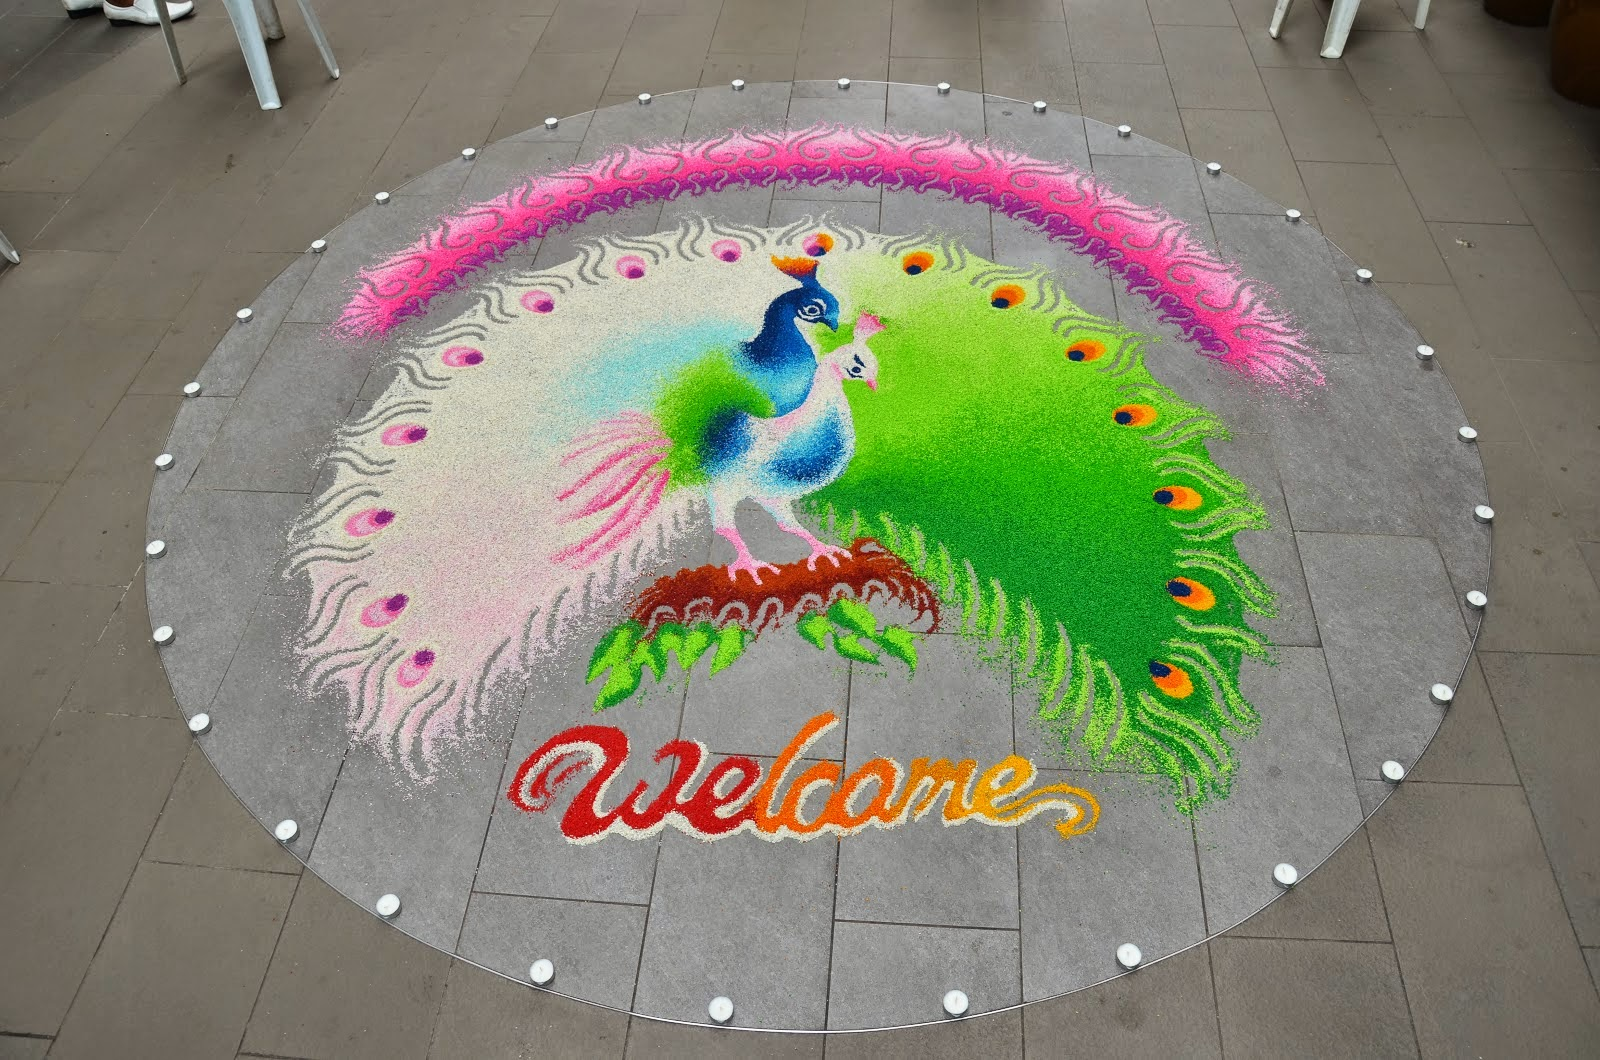 Happy diwali welcome peacock of dhel (Wallpaper groups)